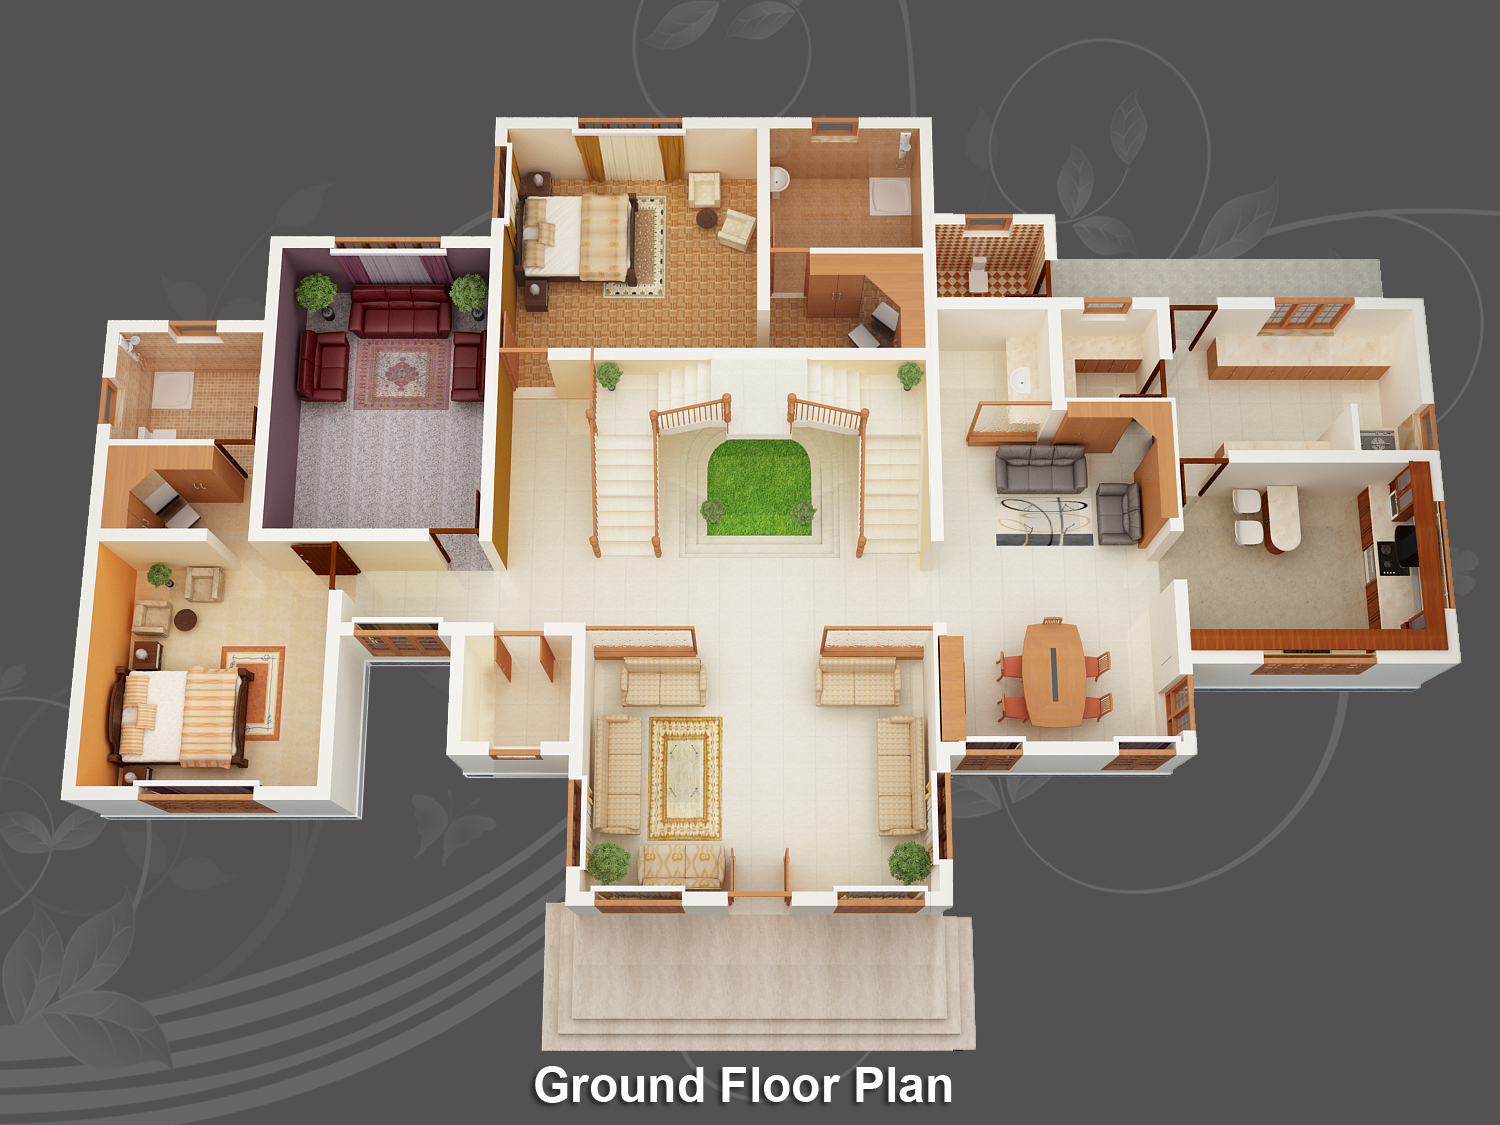 Evens construction pvt ltd 3d house plan 20 05 2011 for Home designs 3d images